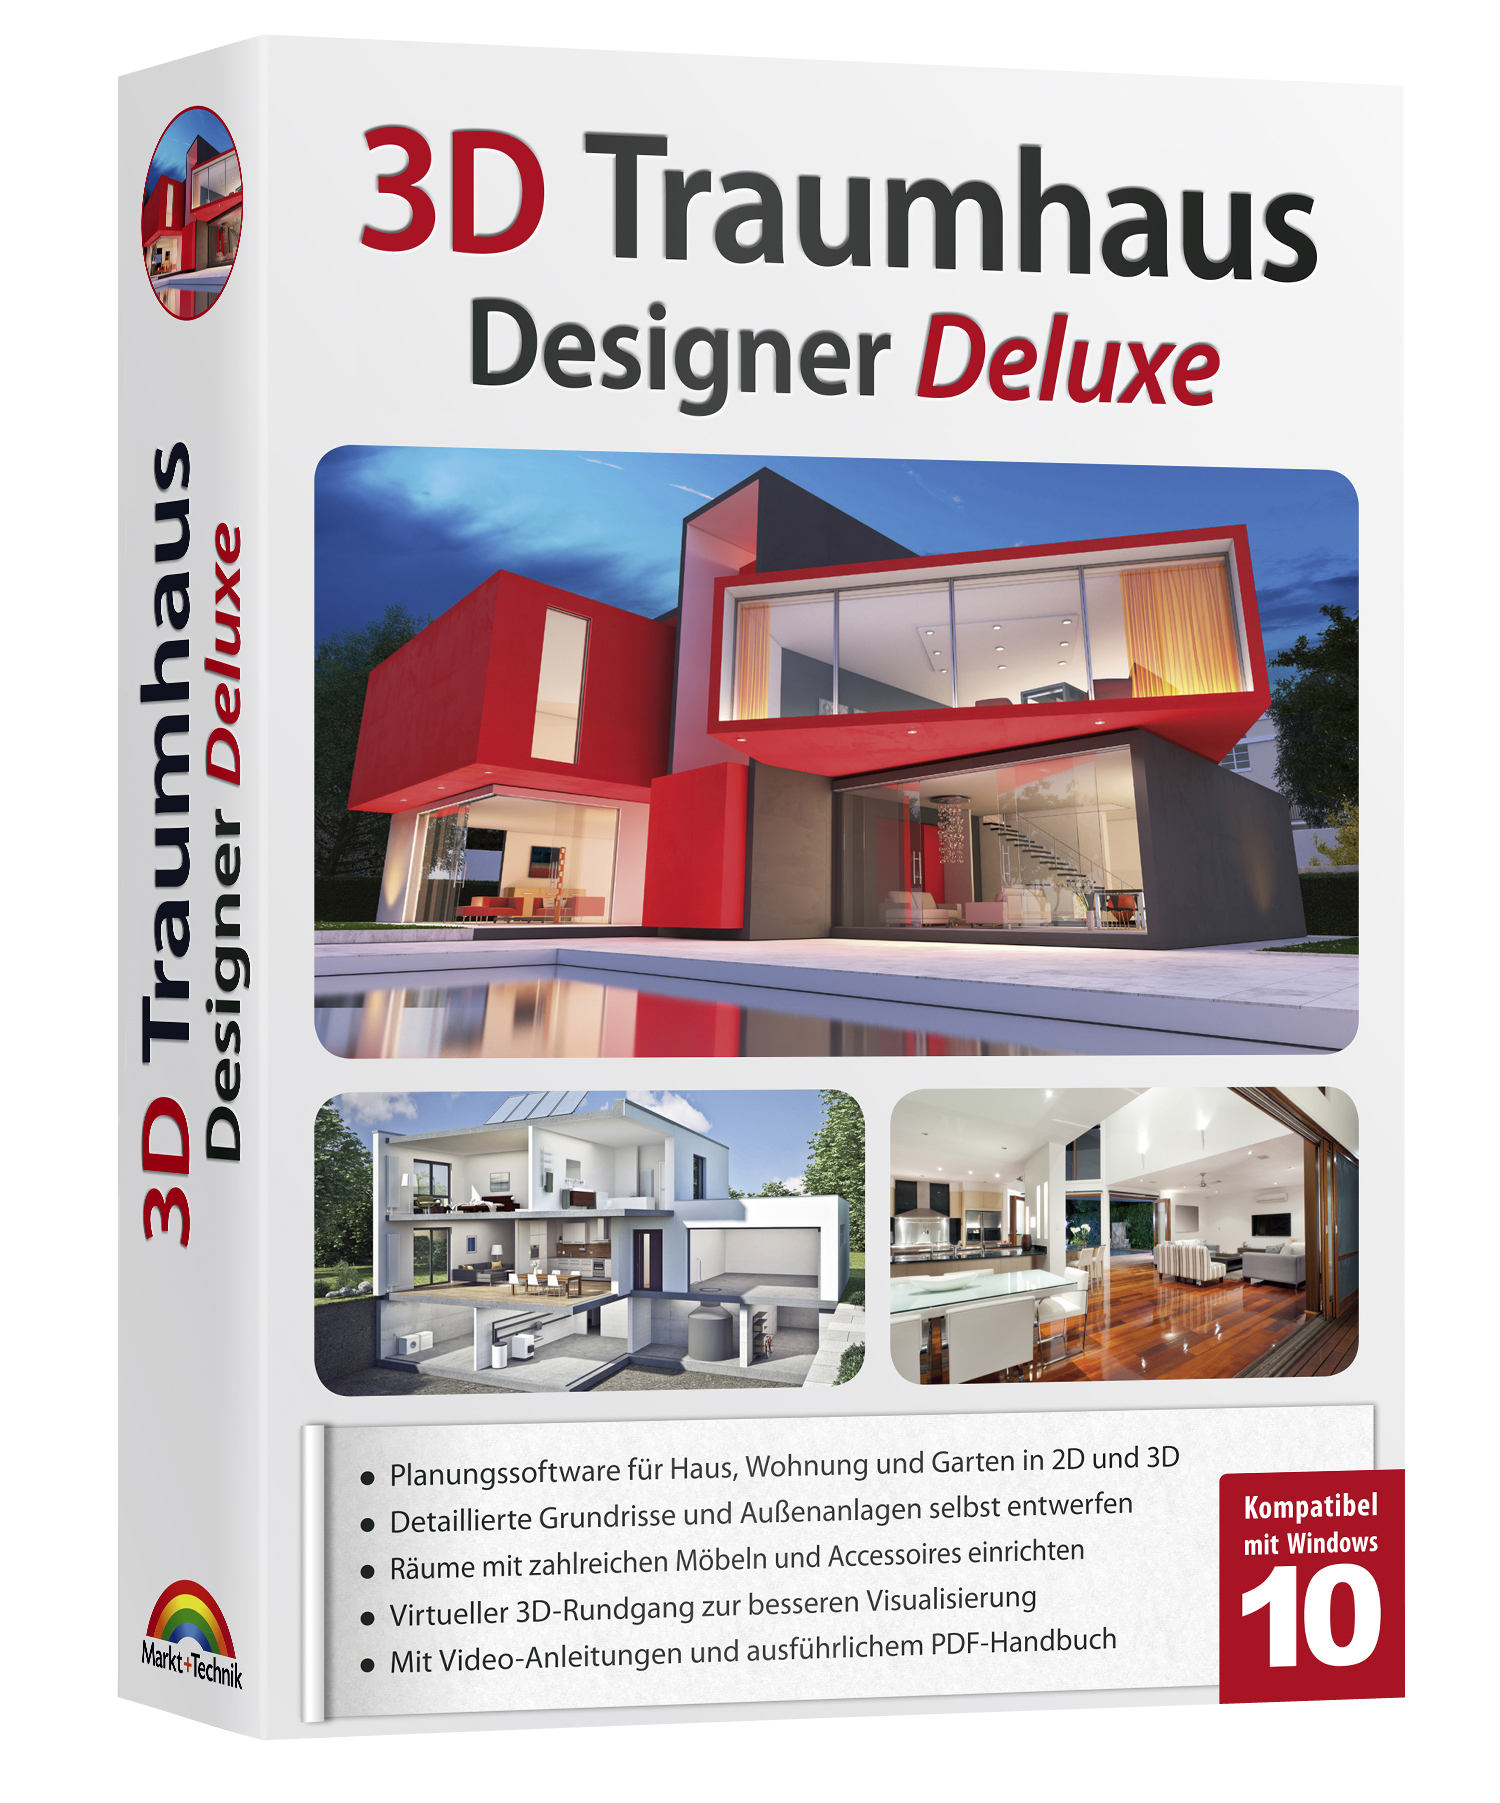 PC_Traumhaus_Deluxe_3D.png